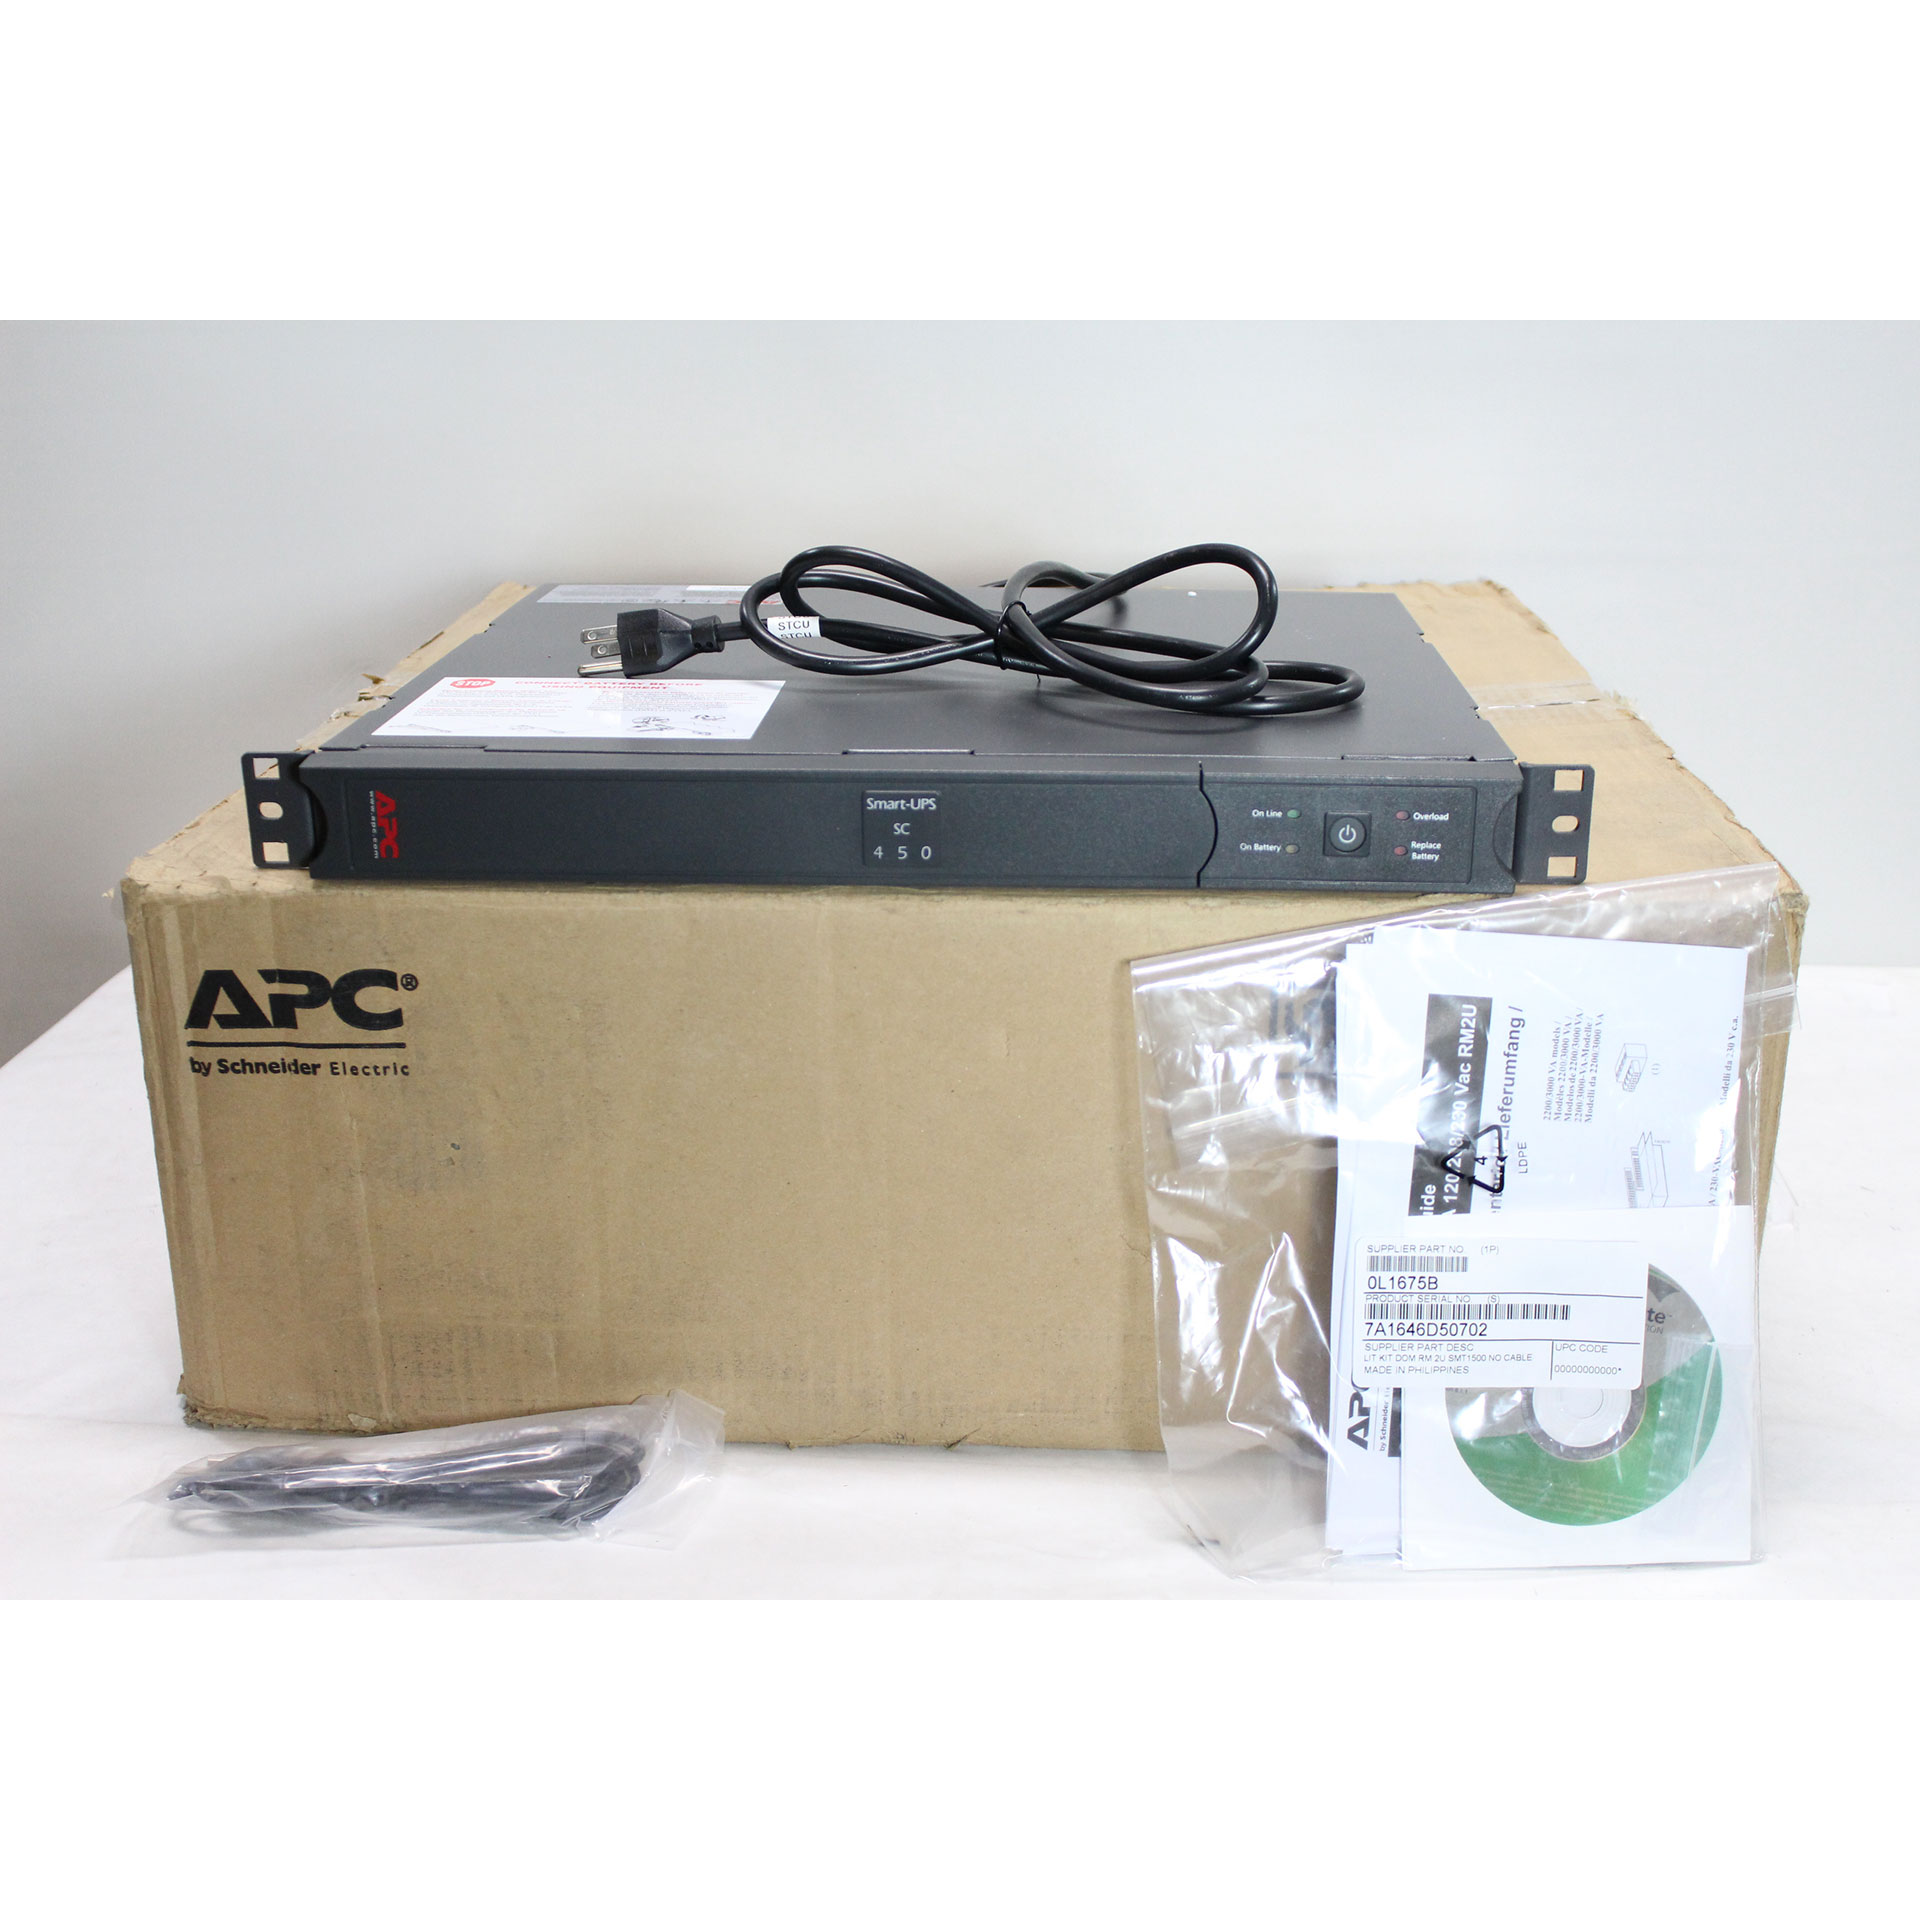 APC Smart-UPS SC 450VA UPS Network Management Card SC450R1X542